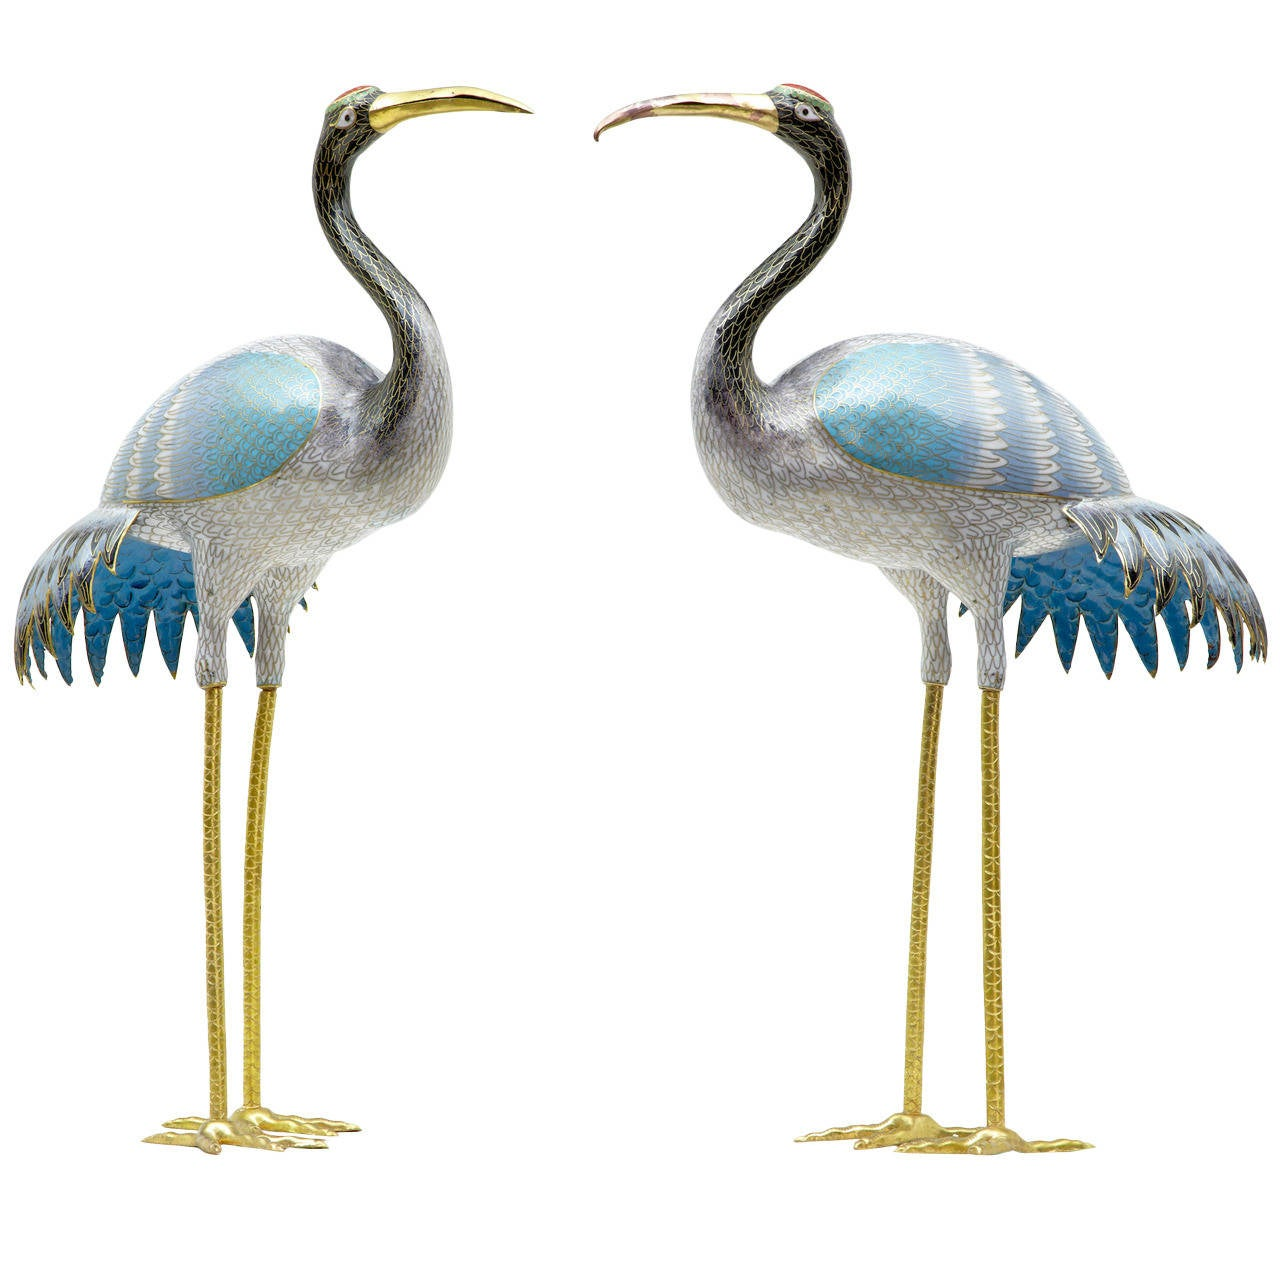 pair of 20th century cloisonne enamel decorative cranes at 1stdibs. Black Bedroom Furniture Sets. Home Design Ideas